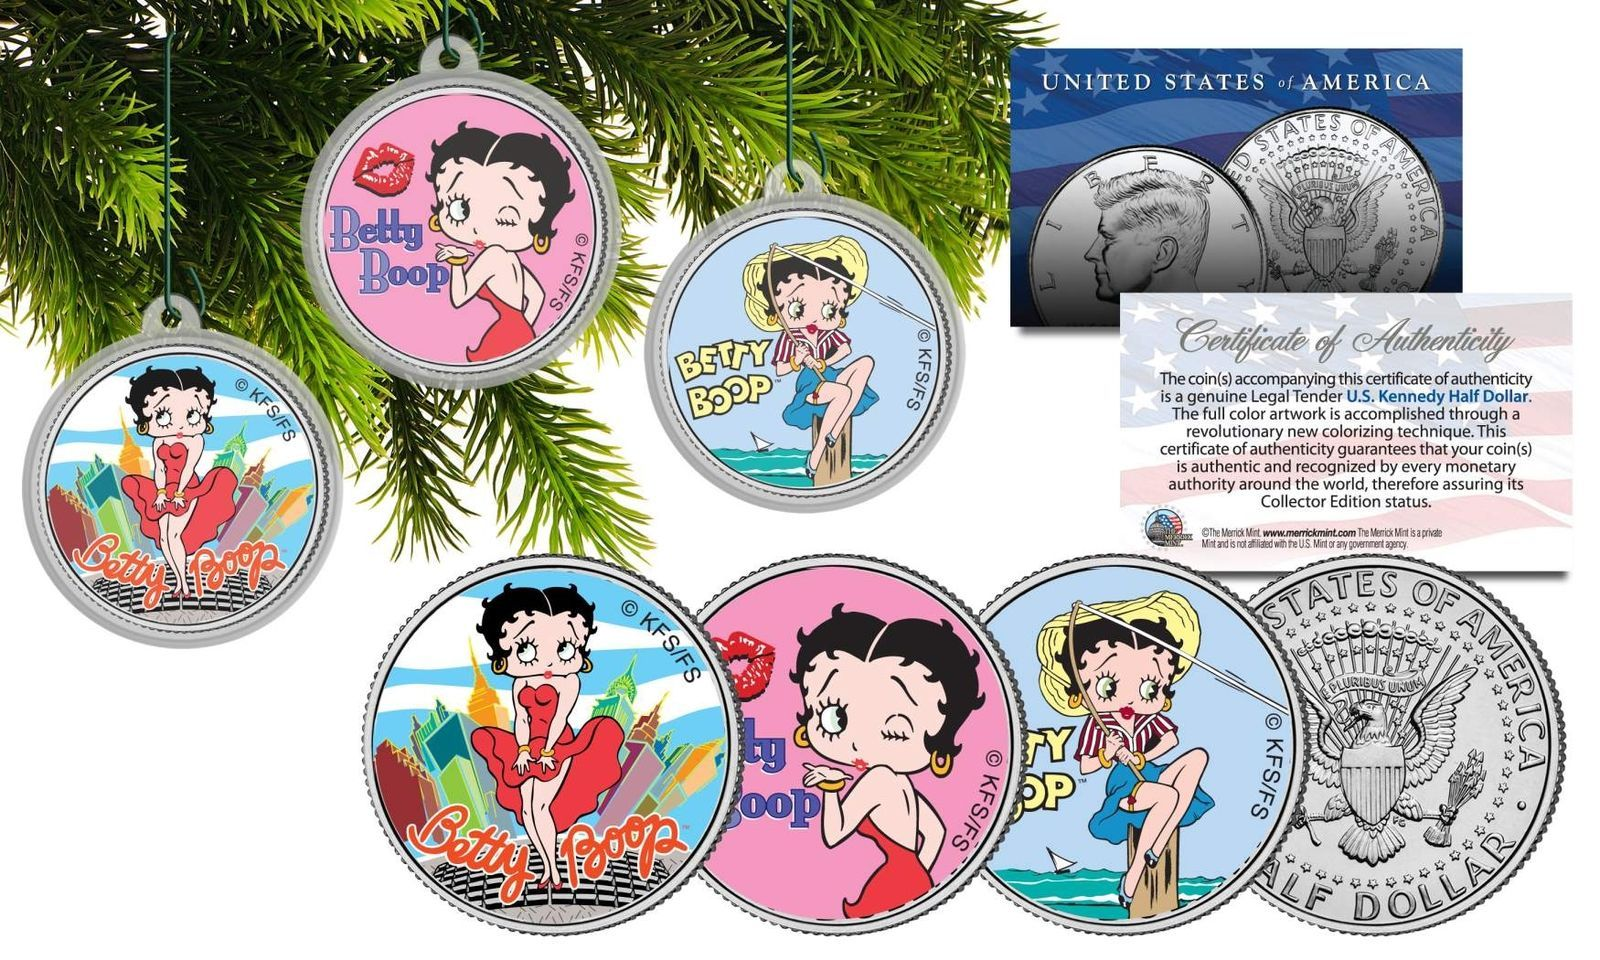 BETTY BOOP Colorized 2001 American Silver Eagle Dollar Coin OFFICIALLY LICENSED